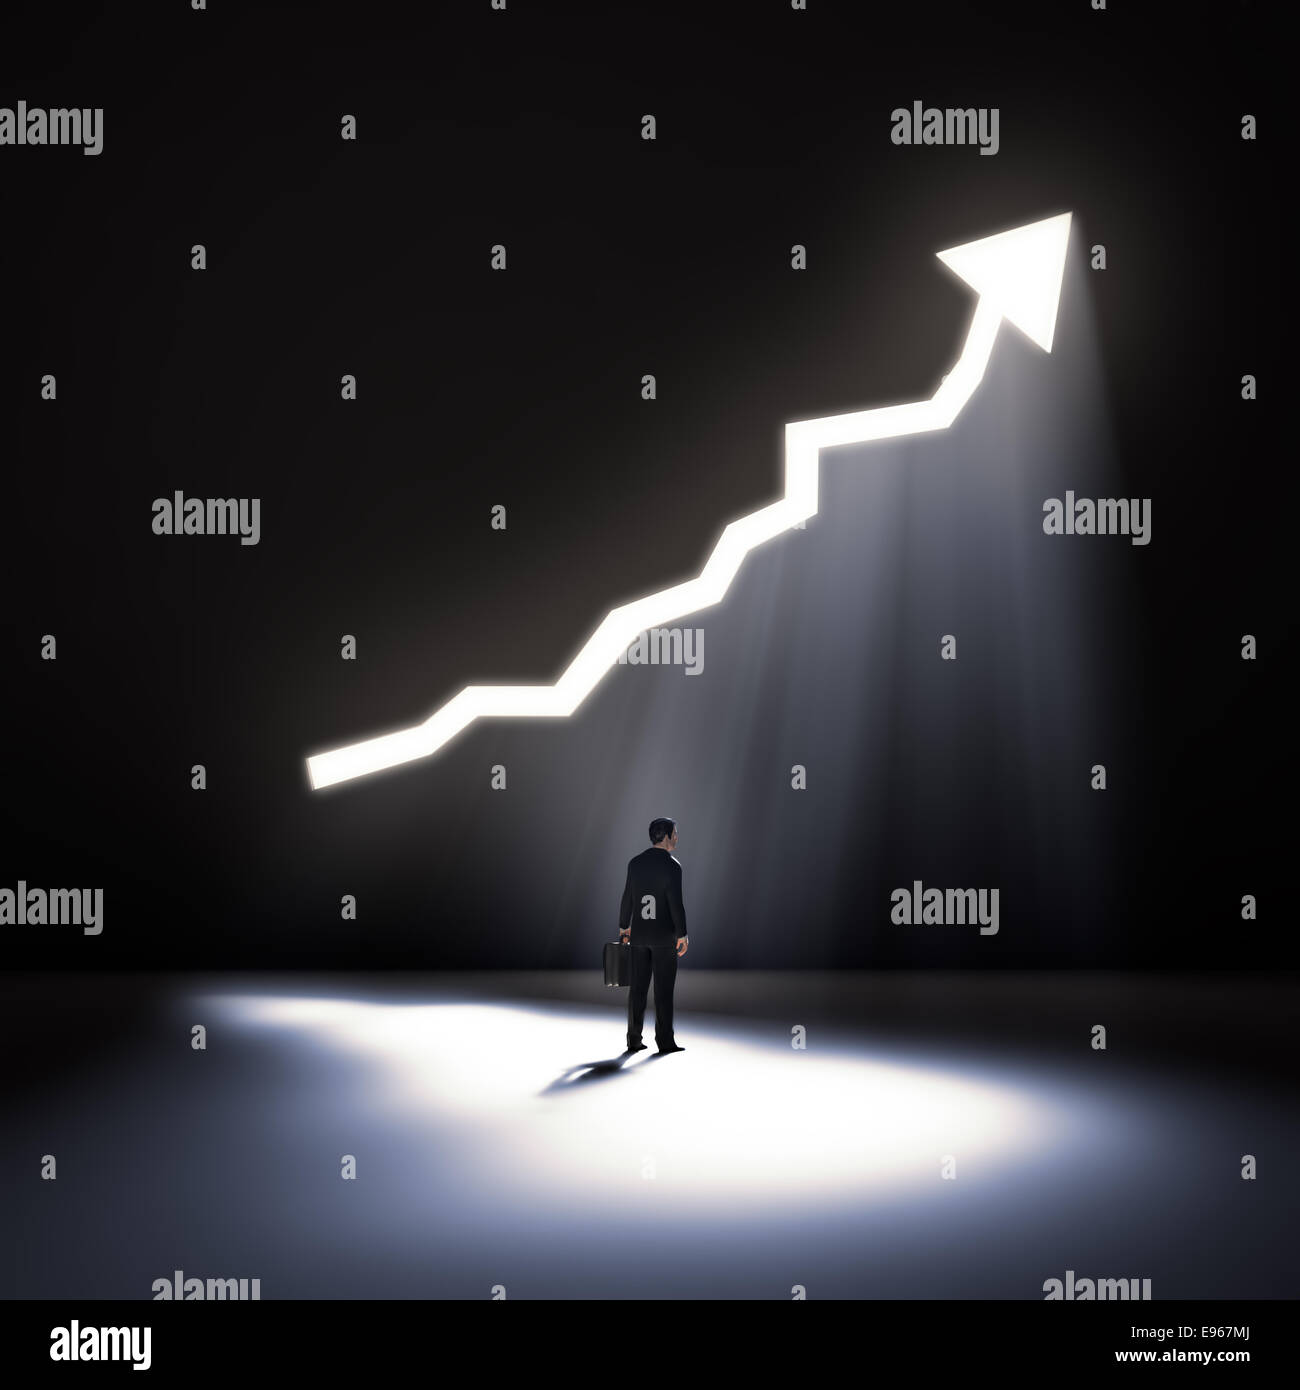 An opening in a wall shaped like an arrow graph - Stock Image